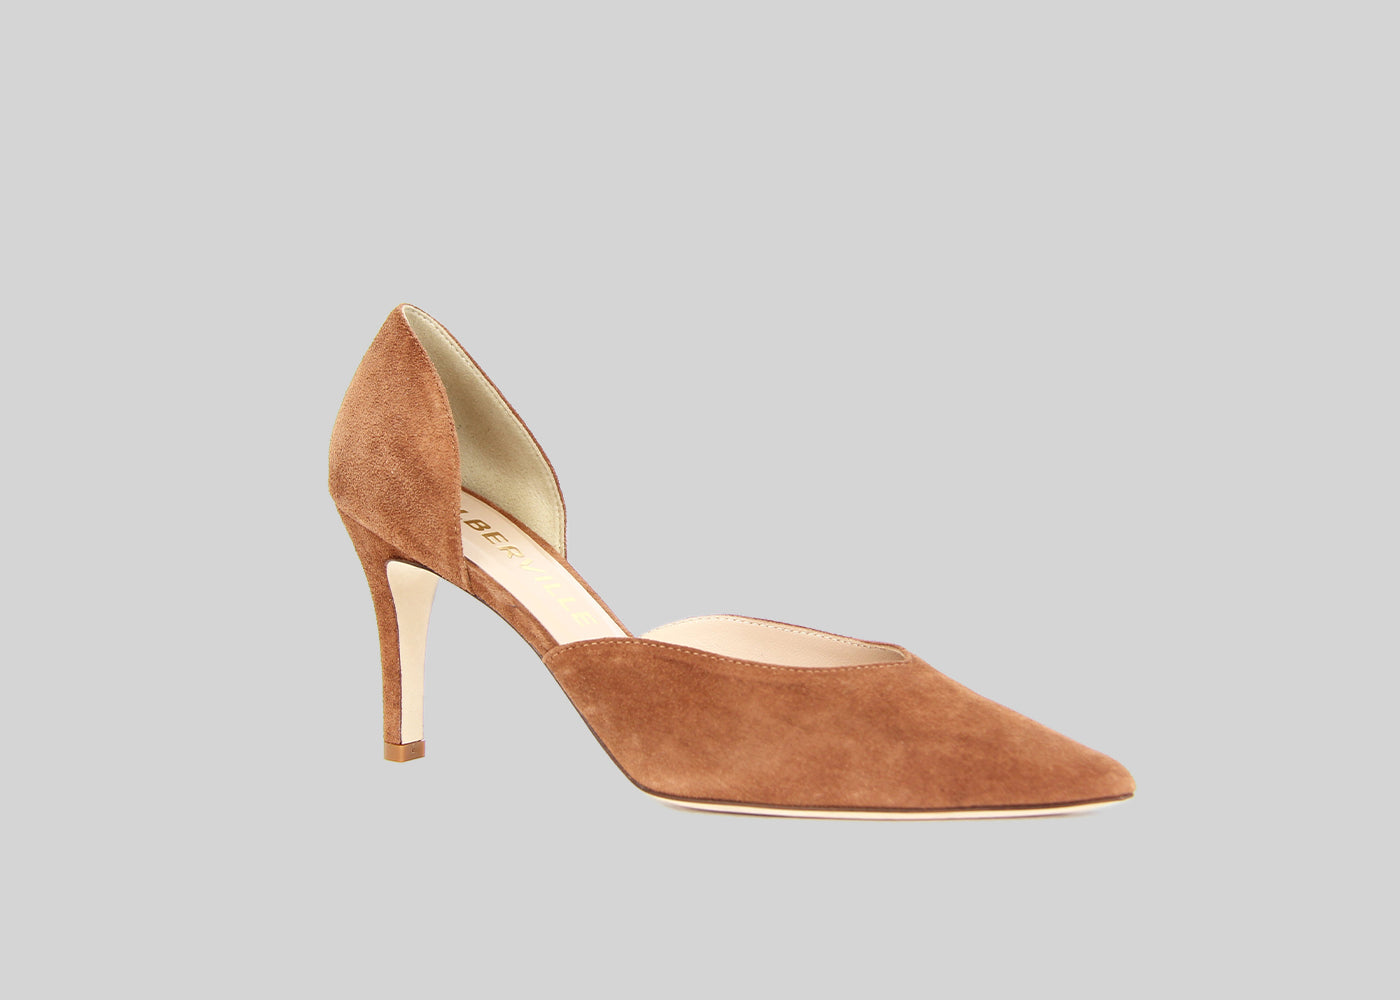 IRO NOUGAT SUEDE TWO-PIECE PUMPS